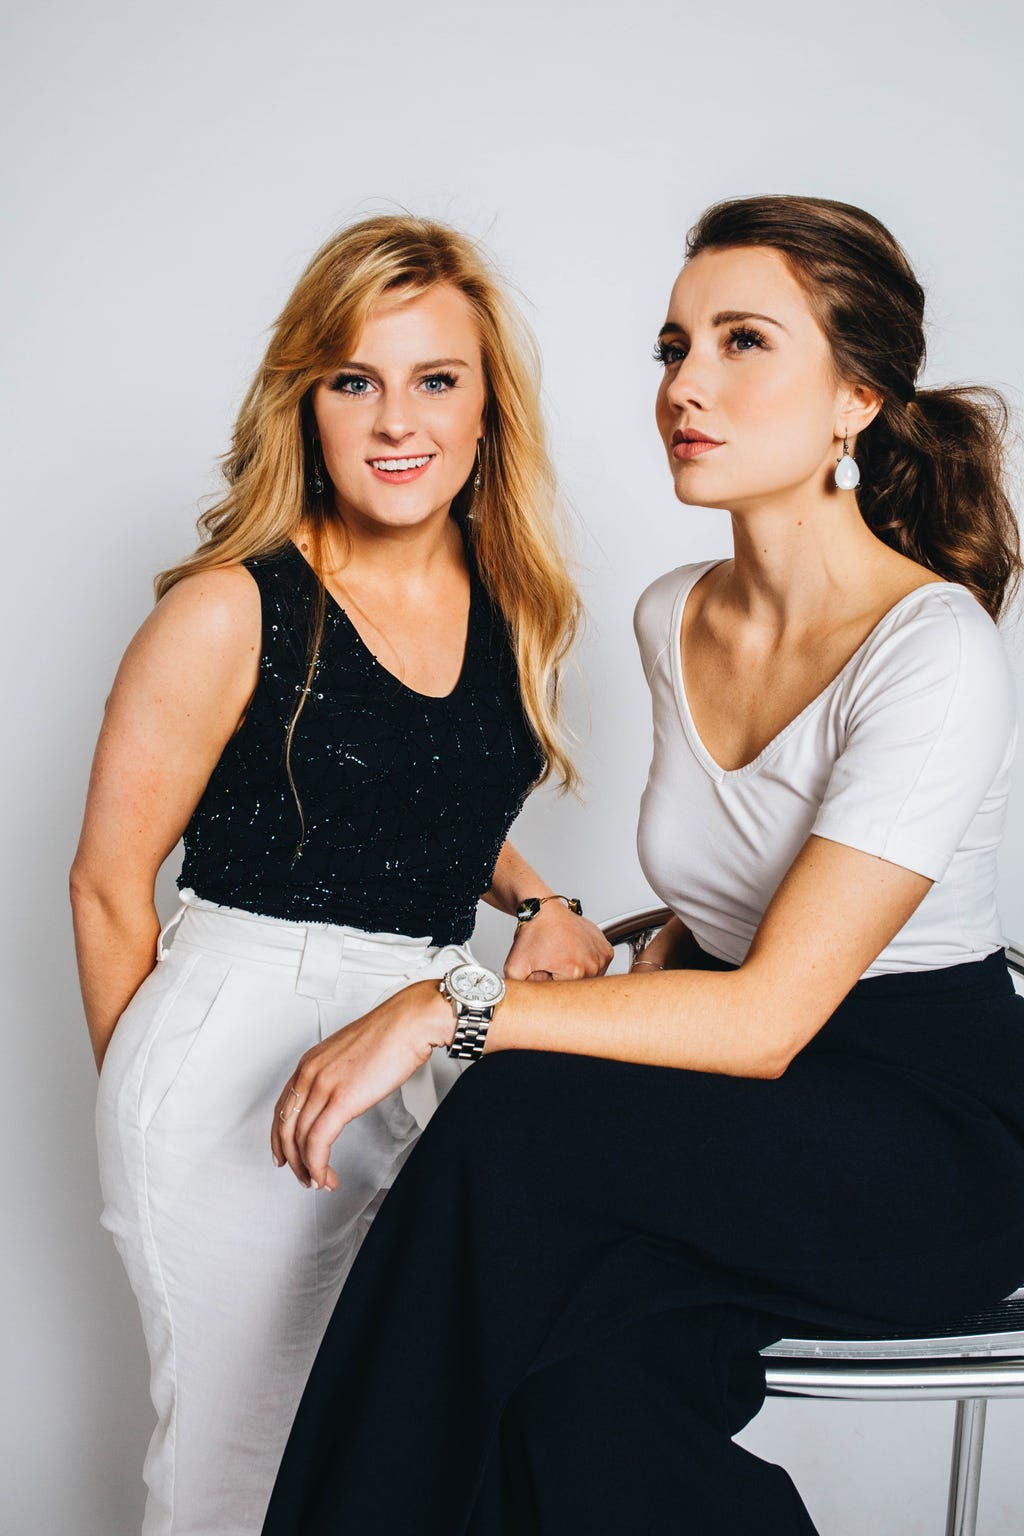 EVAmore co-founders Makenzie Stokel and Channing Moreland.